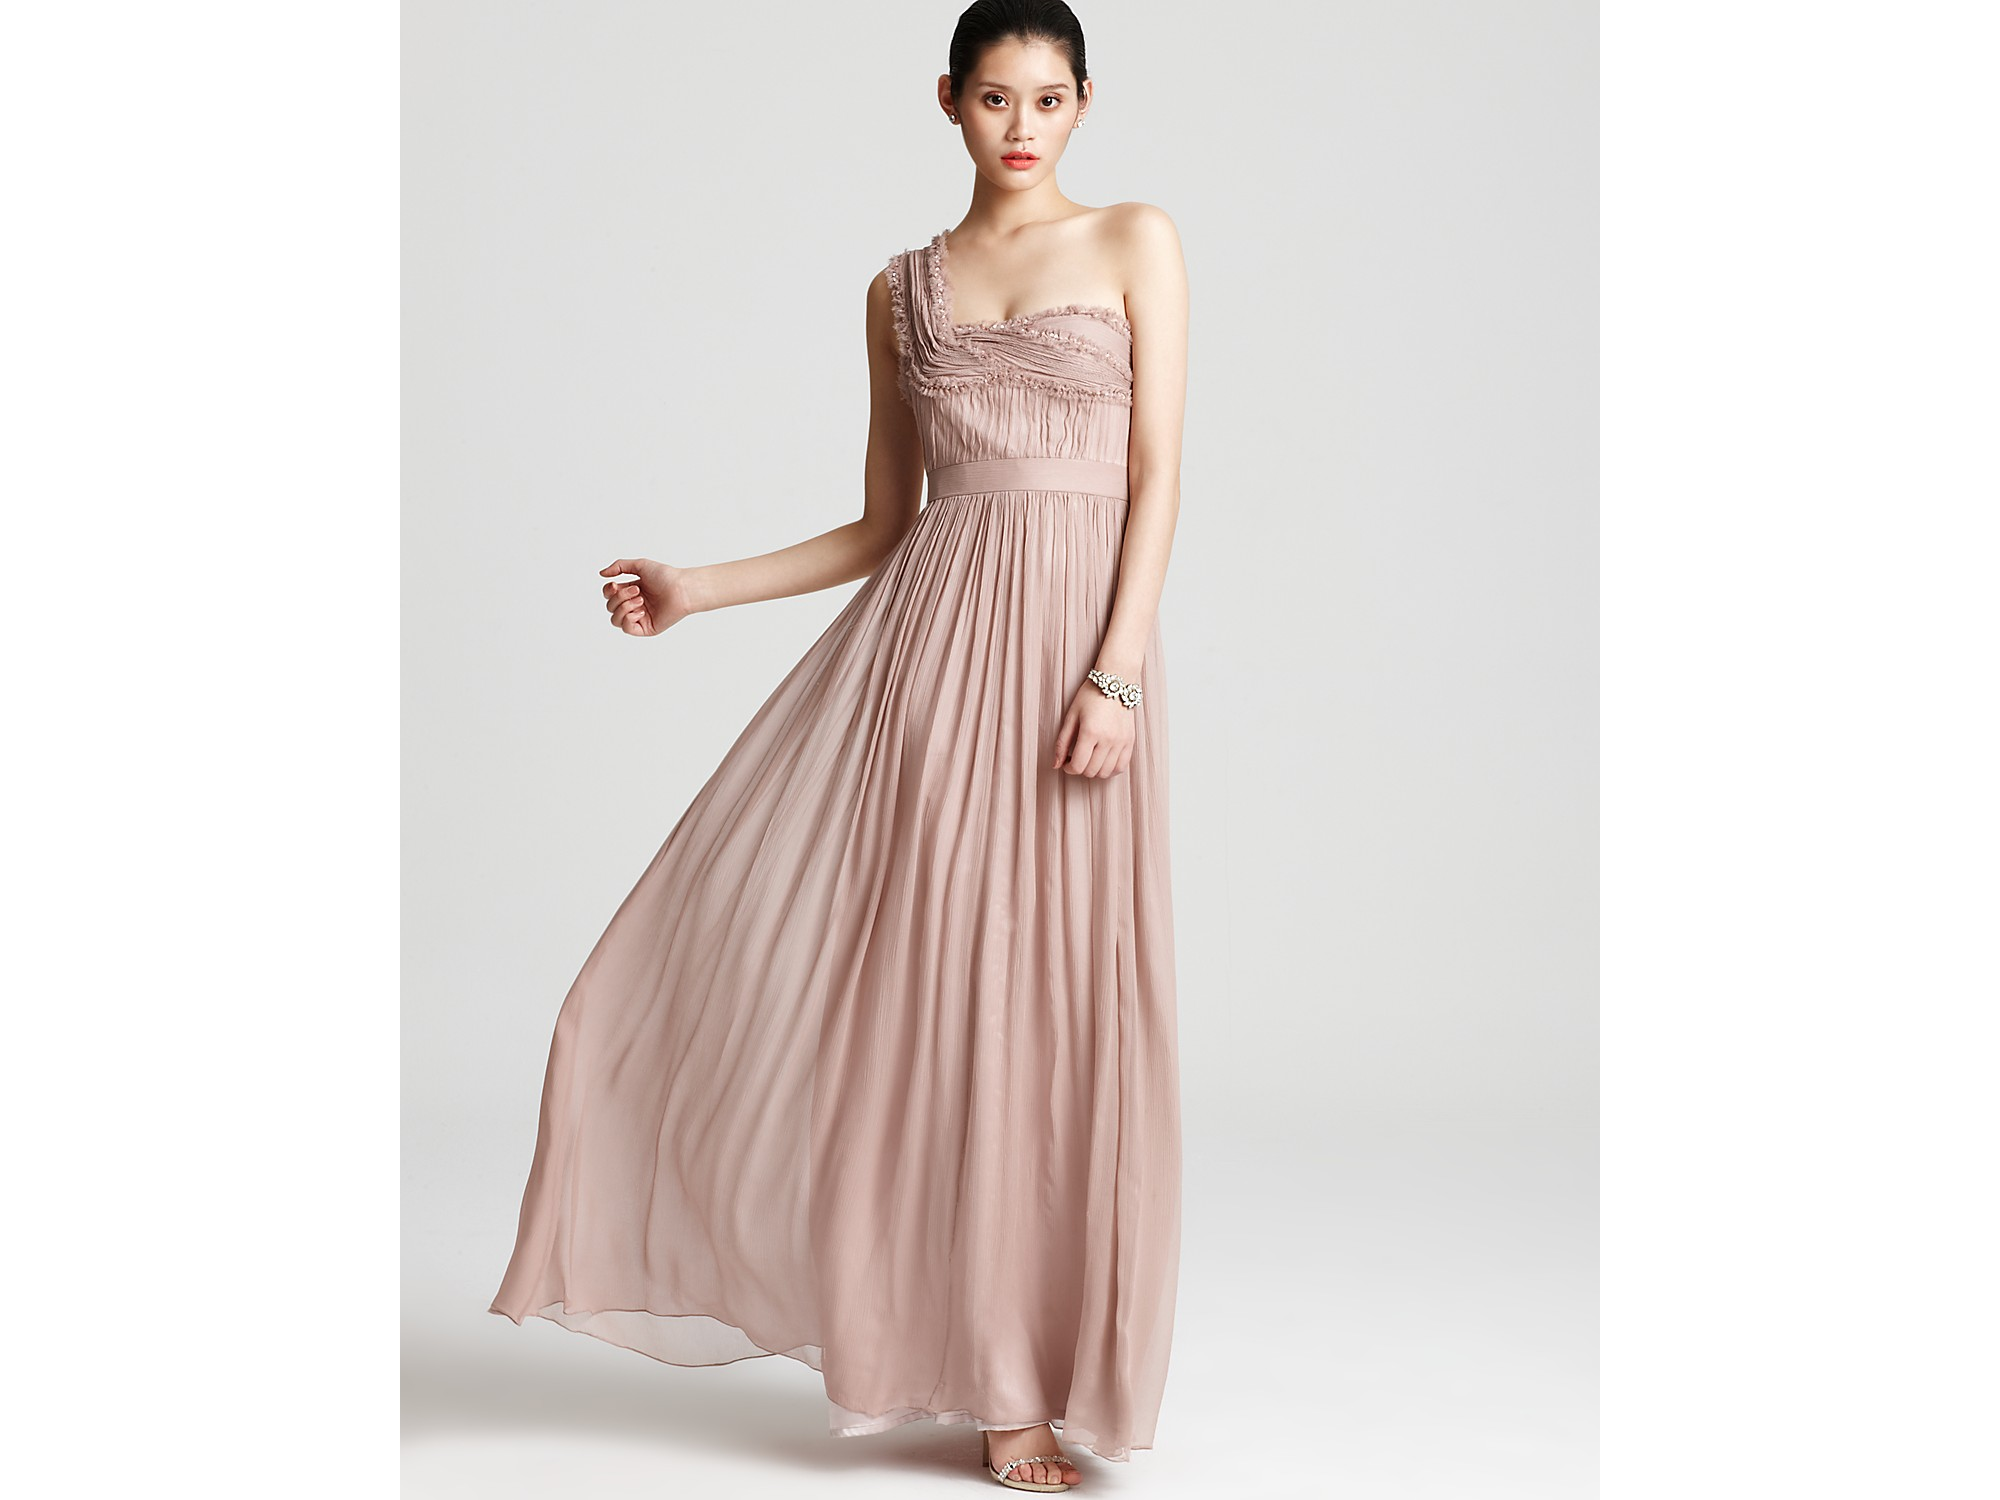 Lyst - Adrianna Papell Gown One Shoulder in Pink